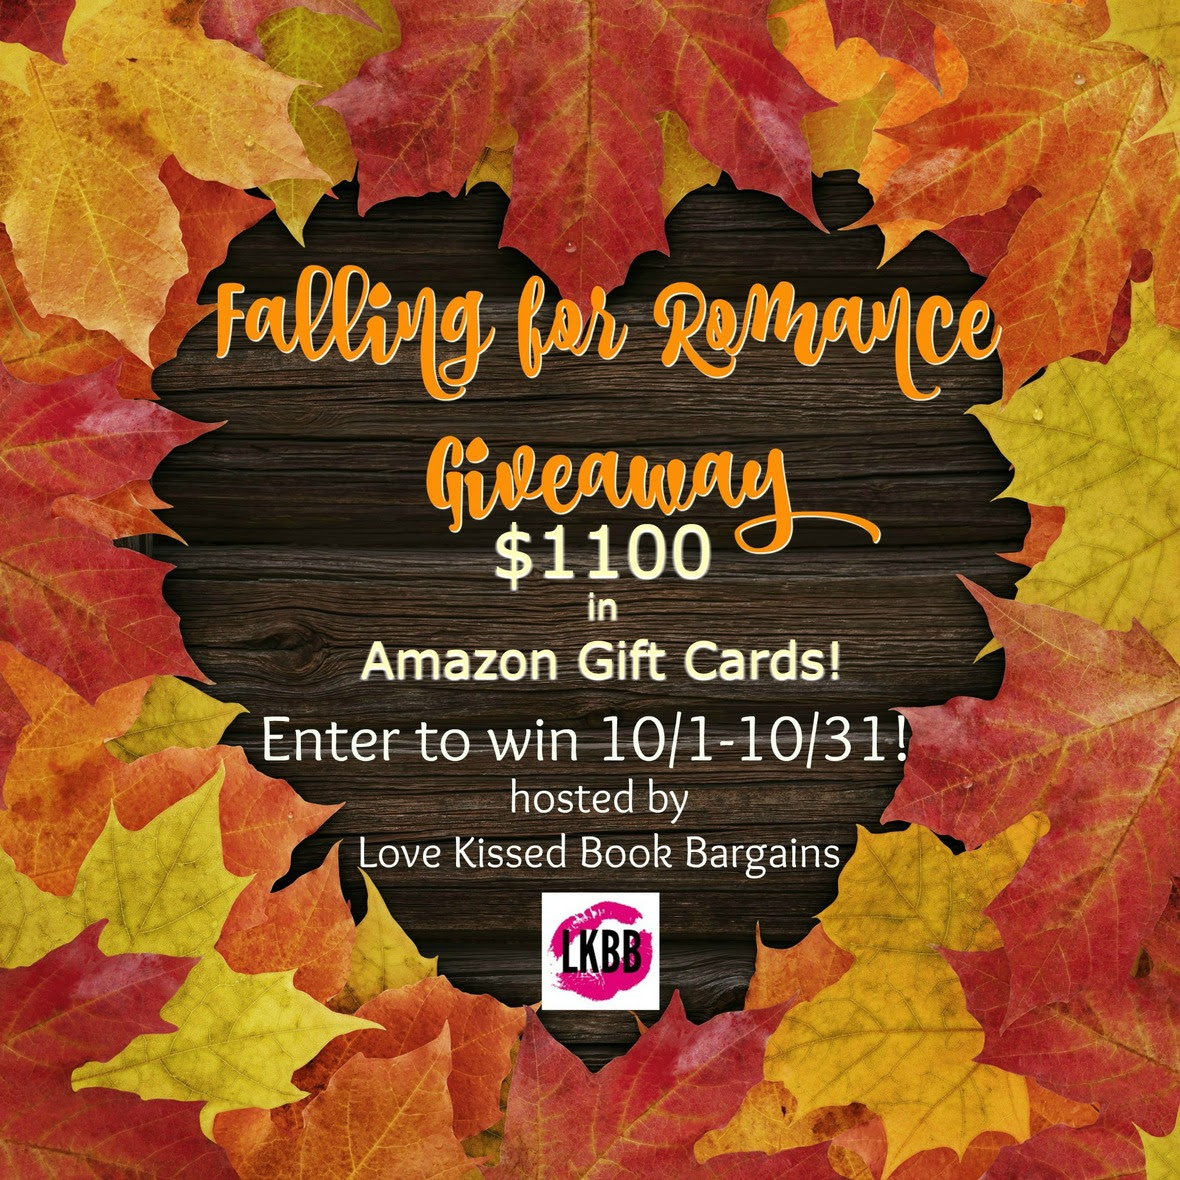 Falling for Romance Giveaway-2-2